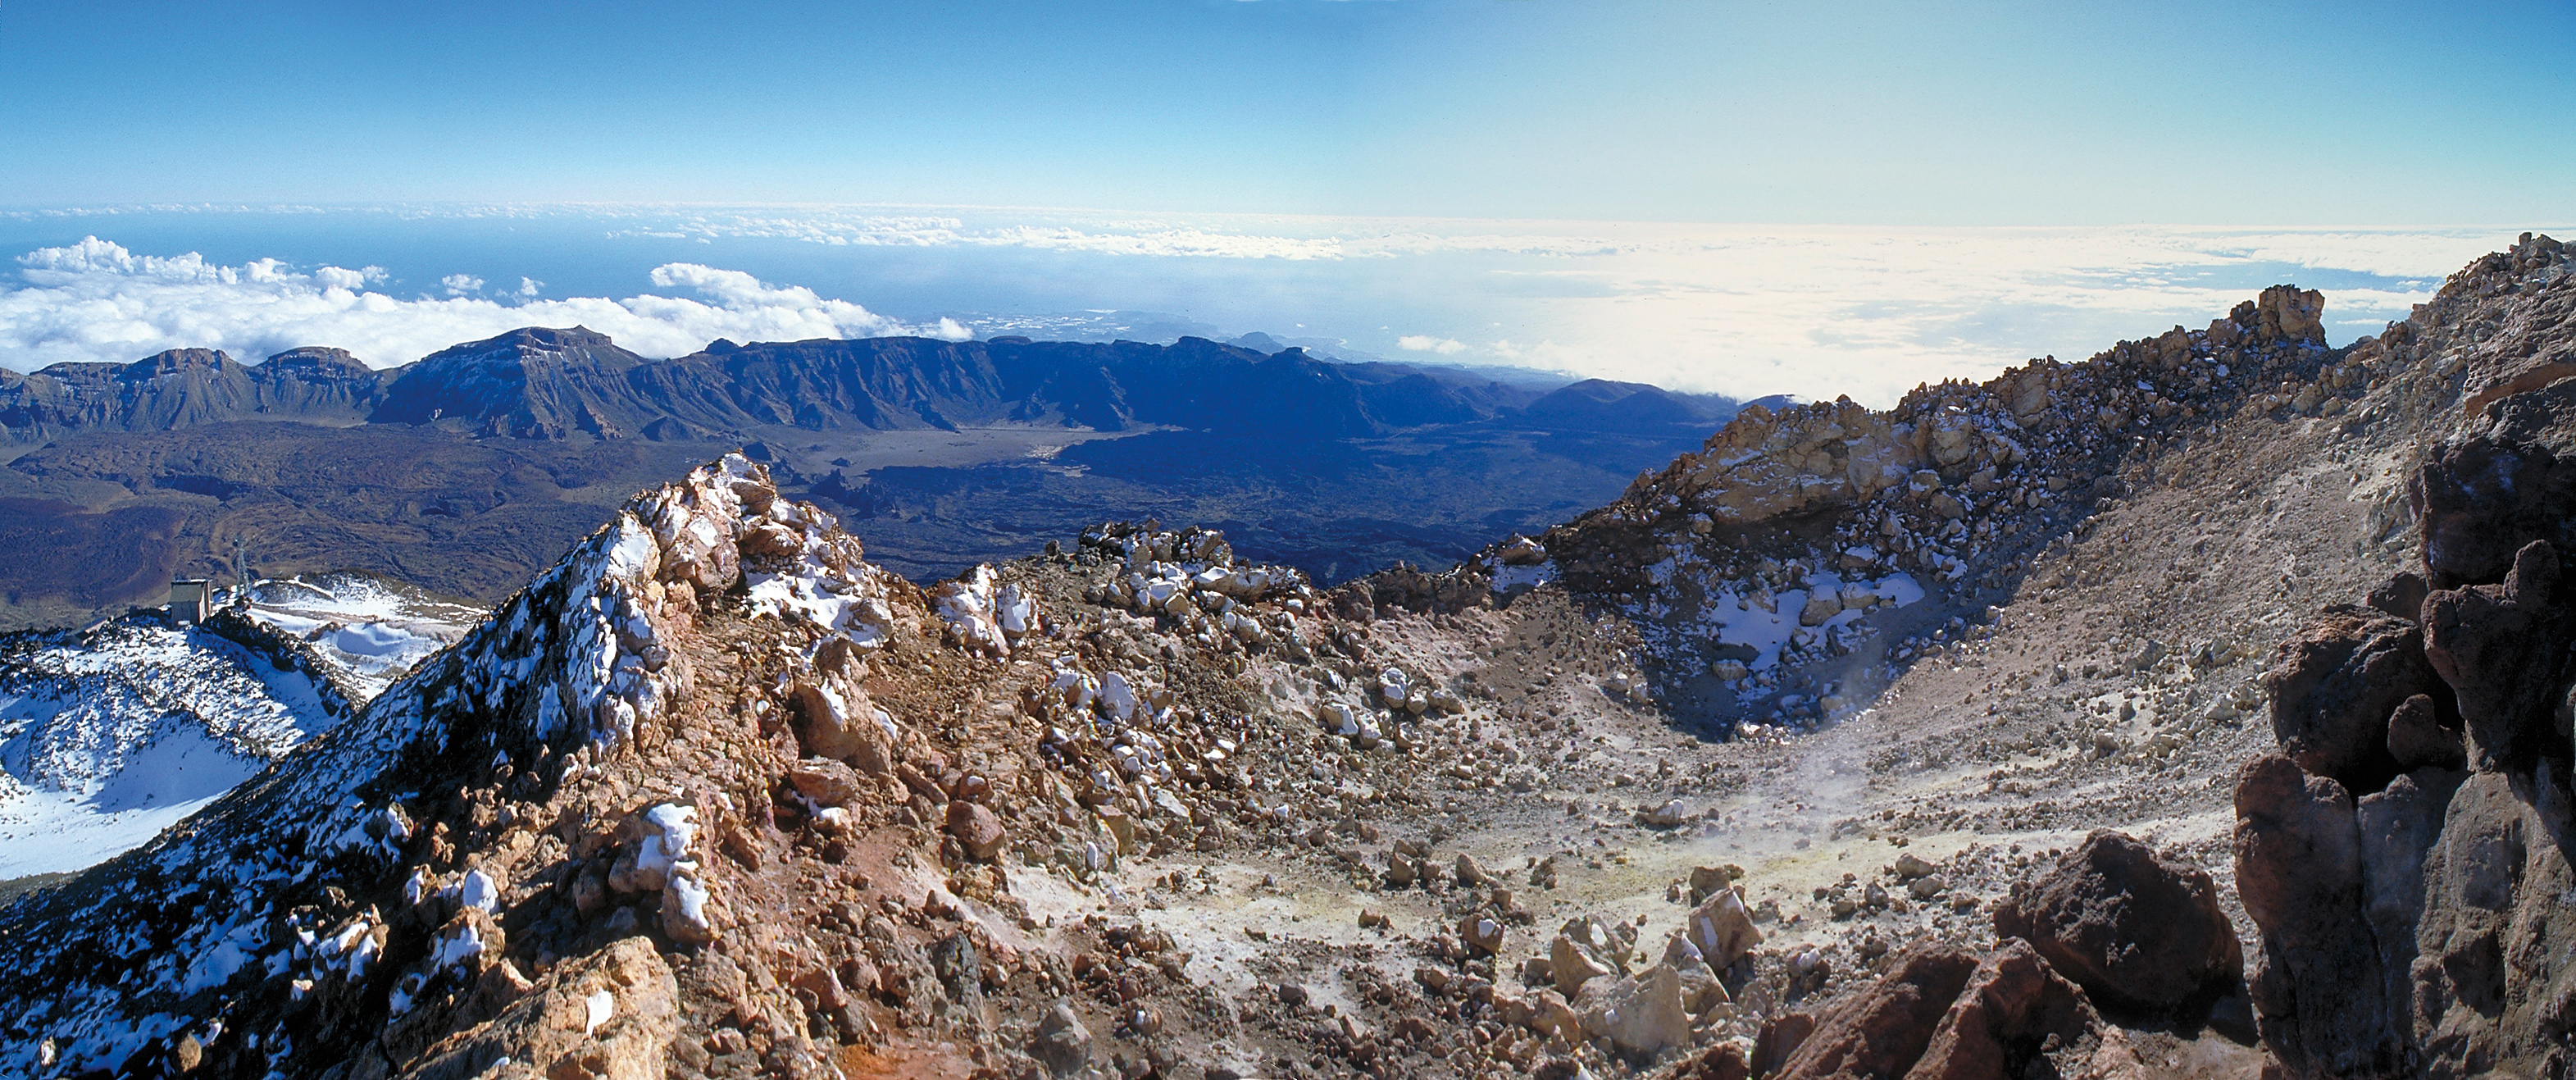 Alternative ways of climbing Teide without permit